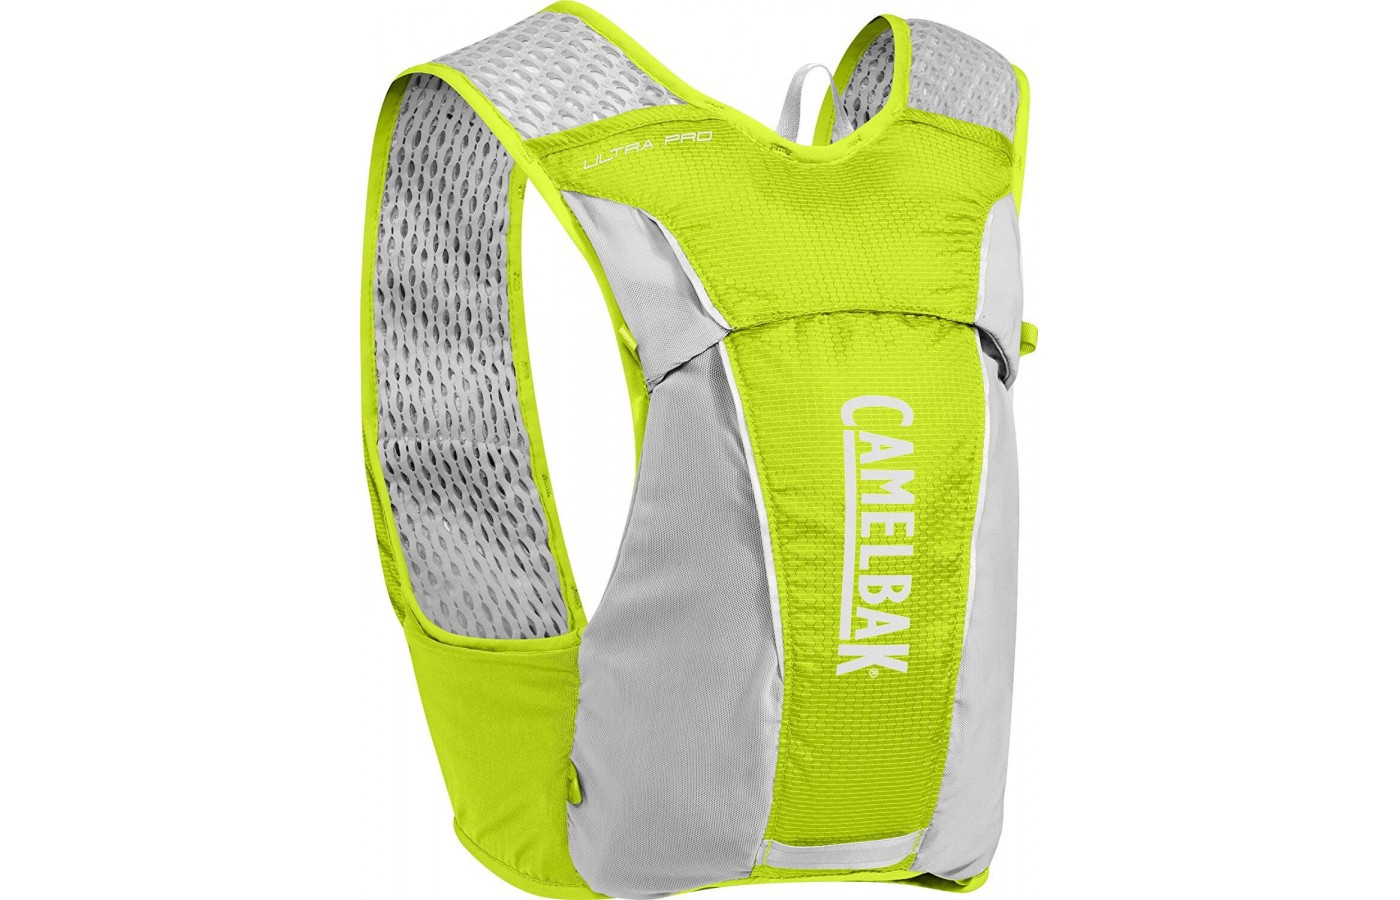 It is made with a lightweight, durable, 3D mesh material.